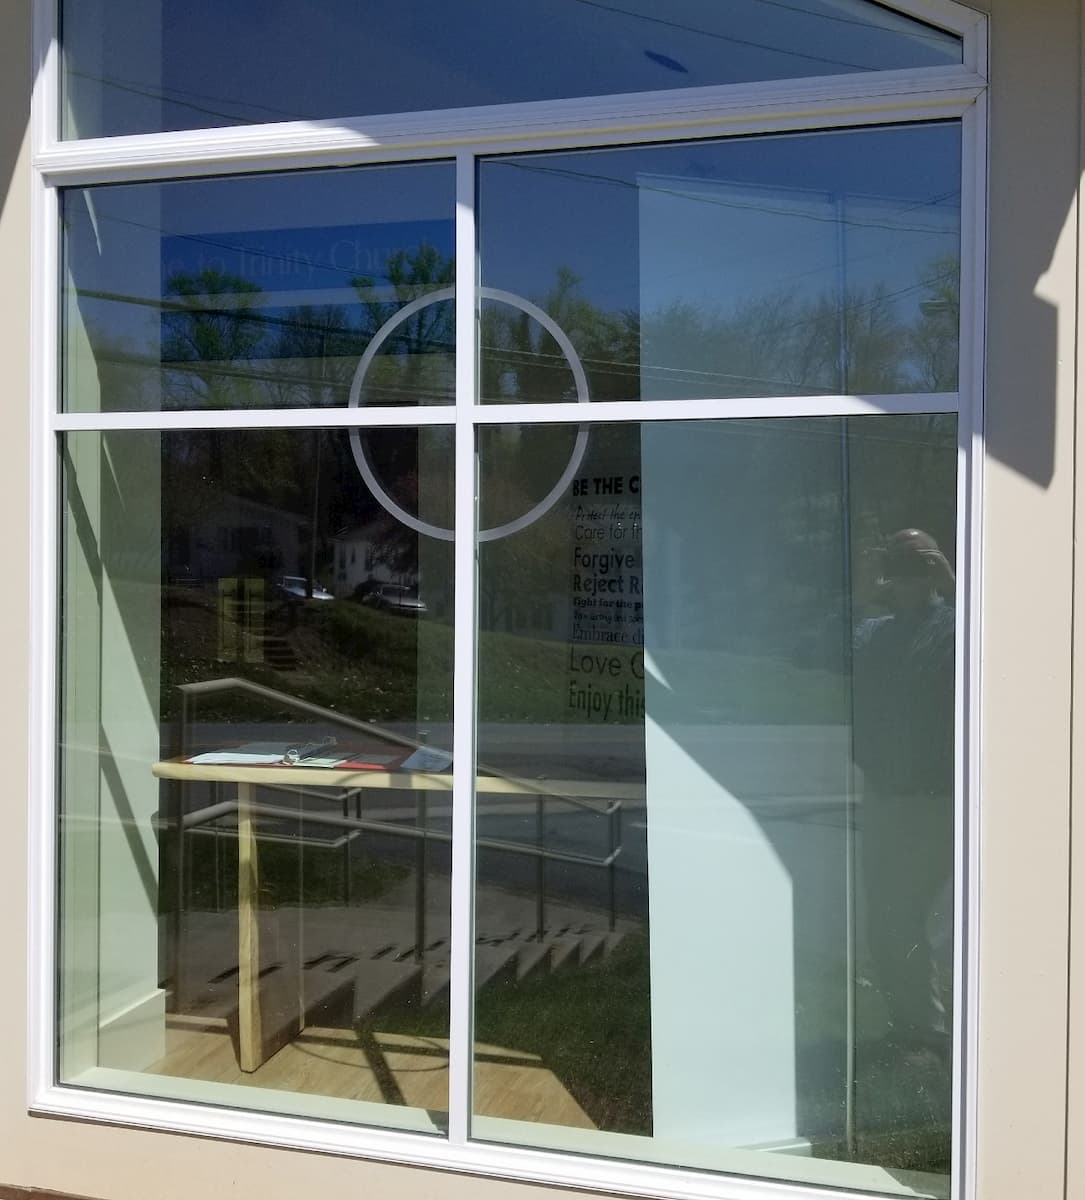 Exterior view of custom wood window with cross grille pattern